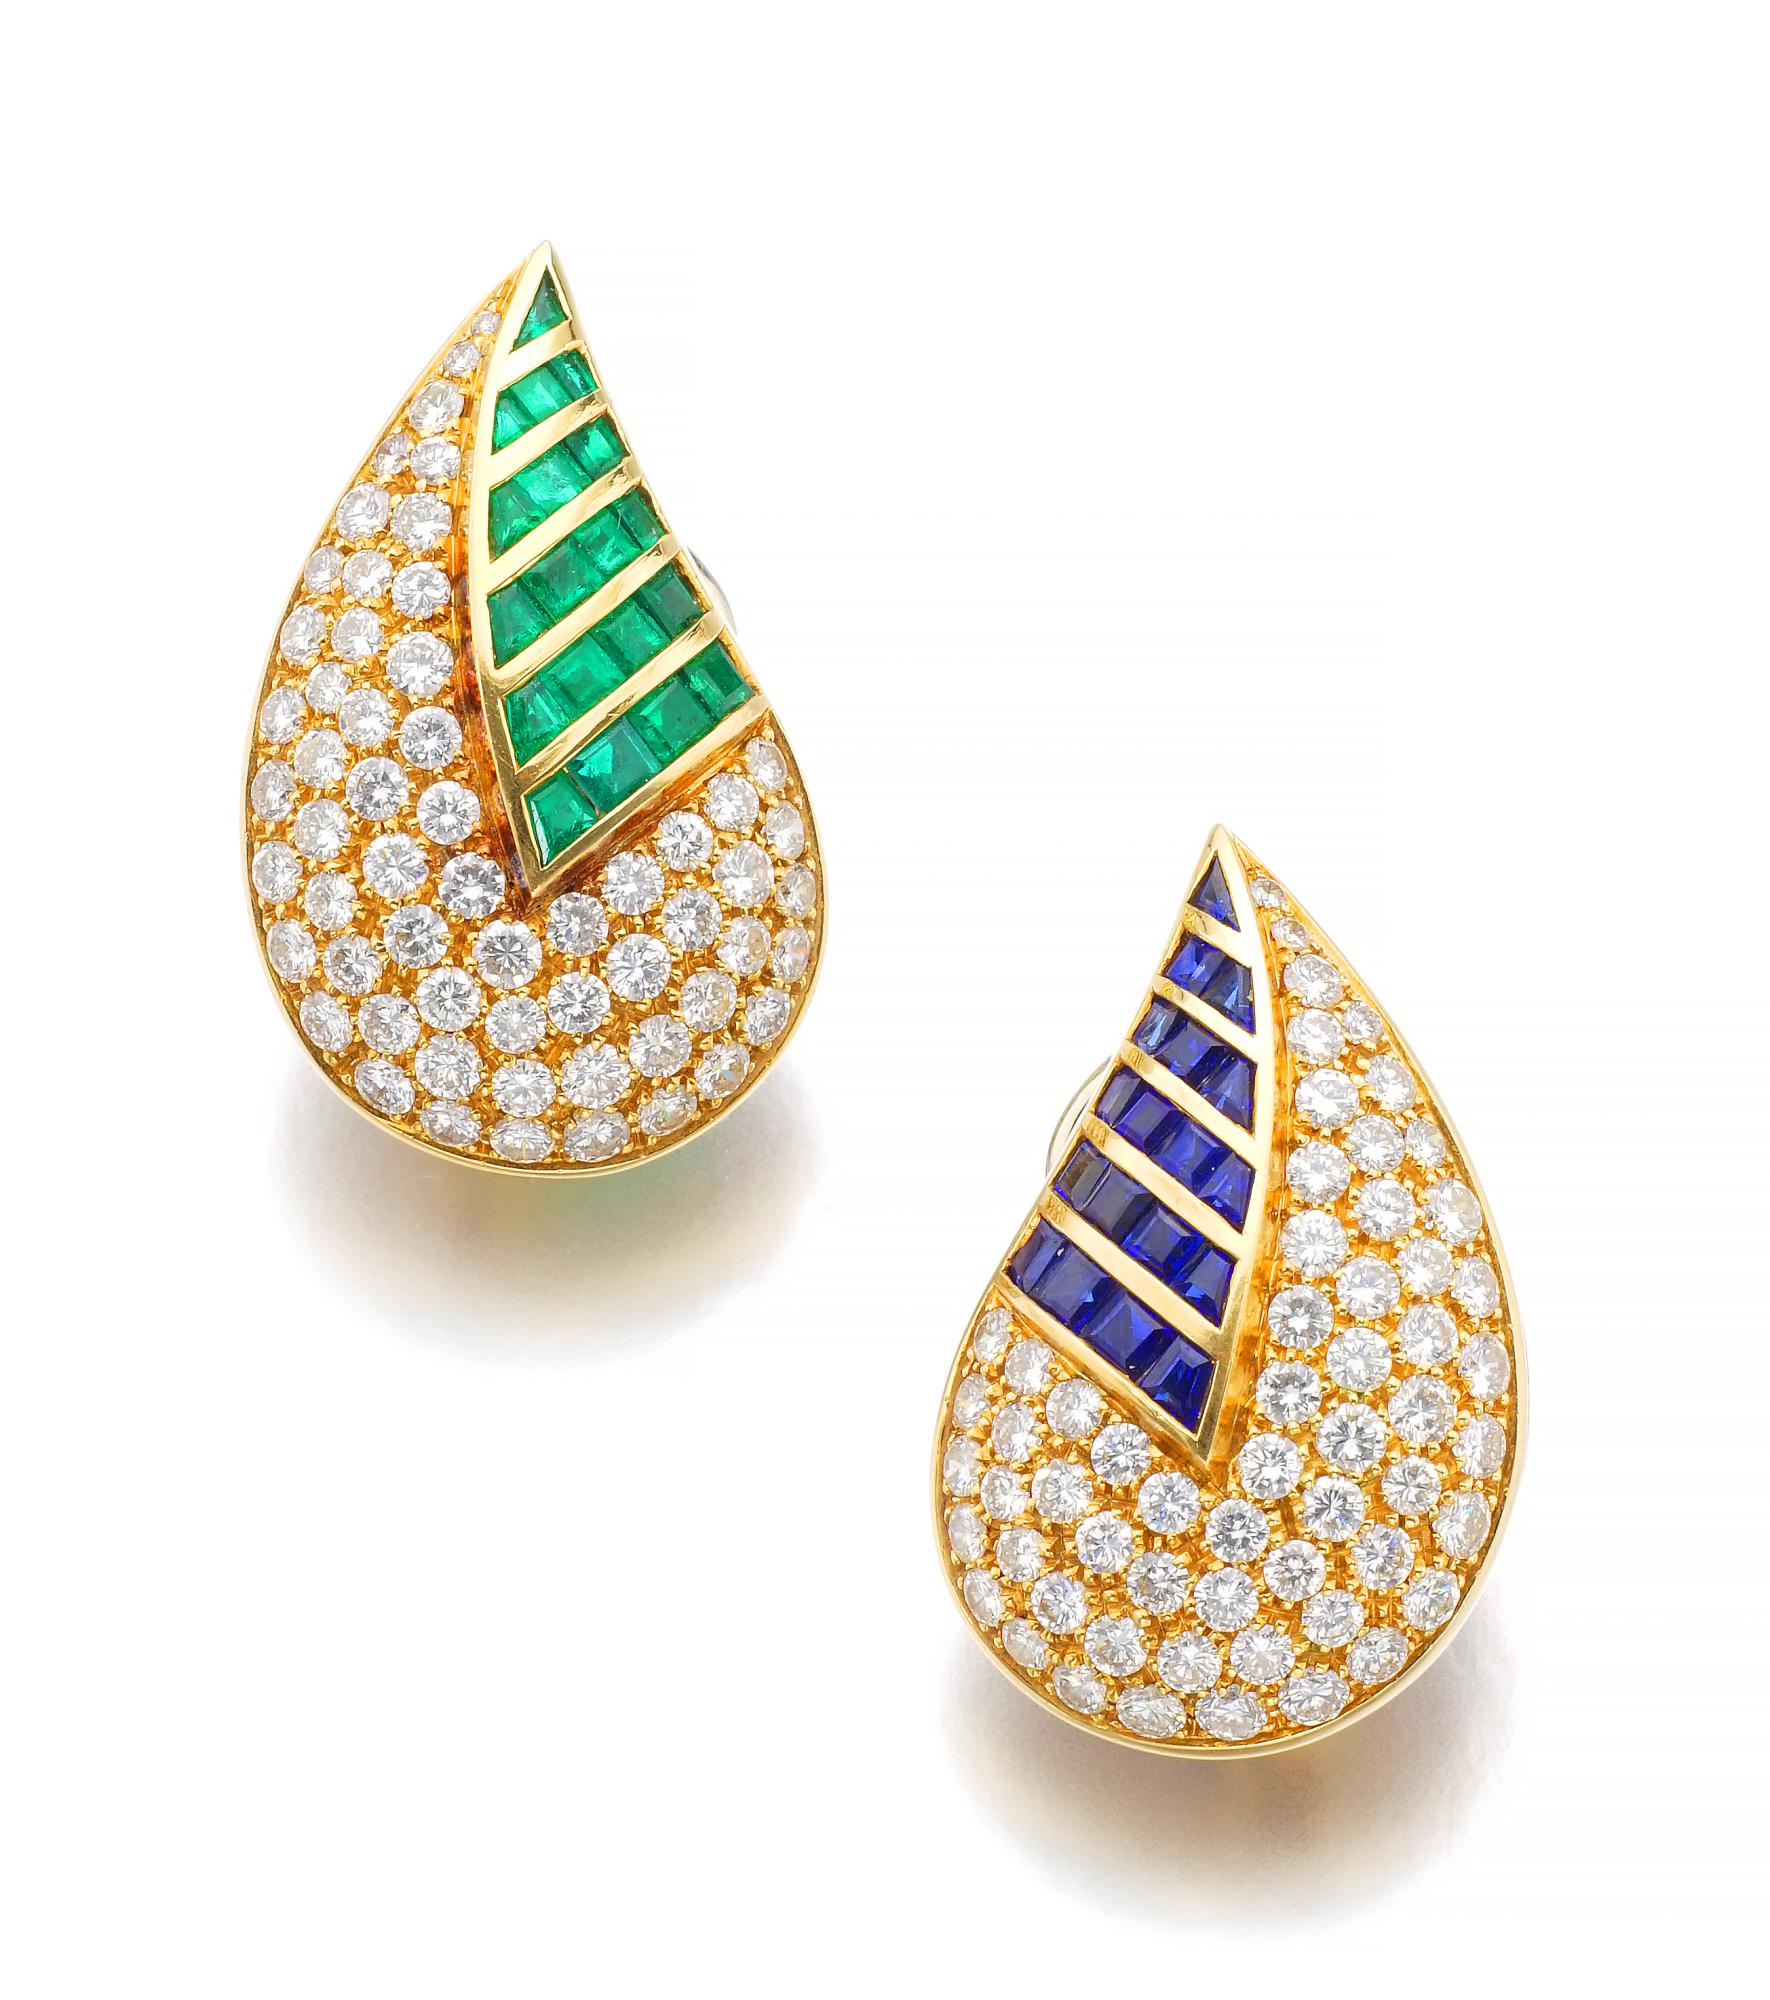 PAIR OF EMERALD, SAPPHIRE AND DIAMOND EAR CLIPS | FASANO